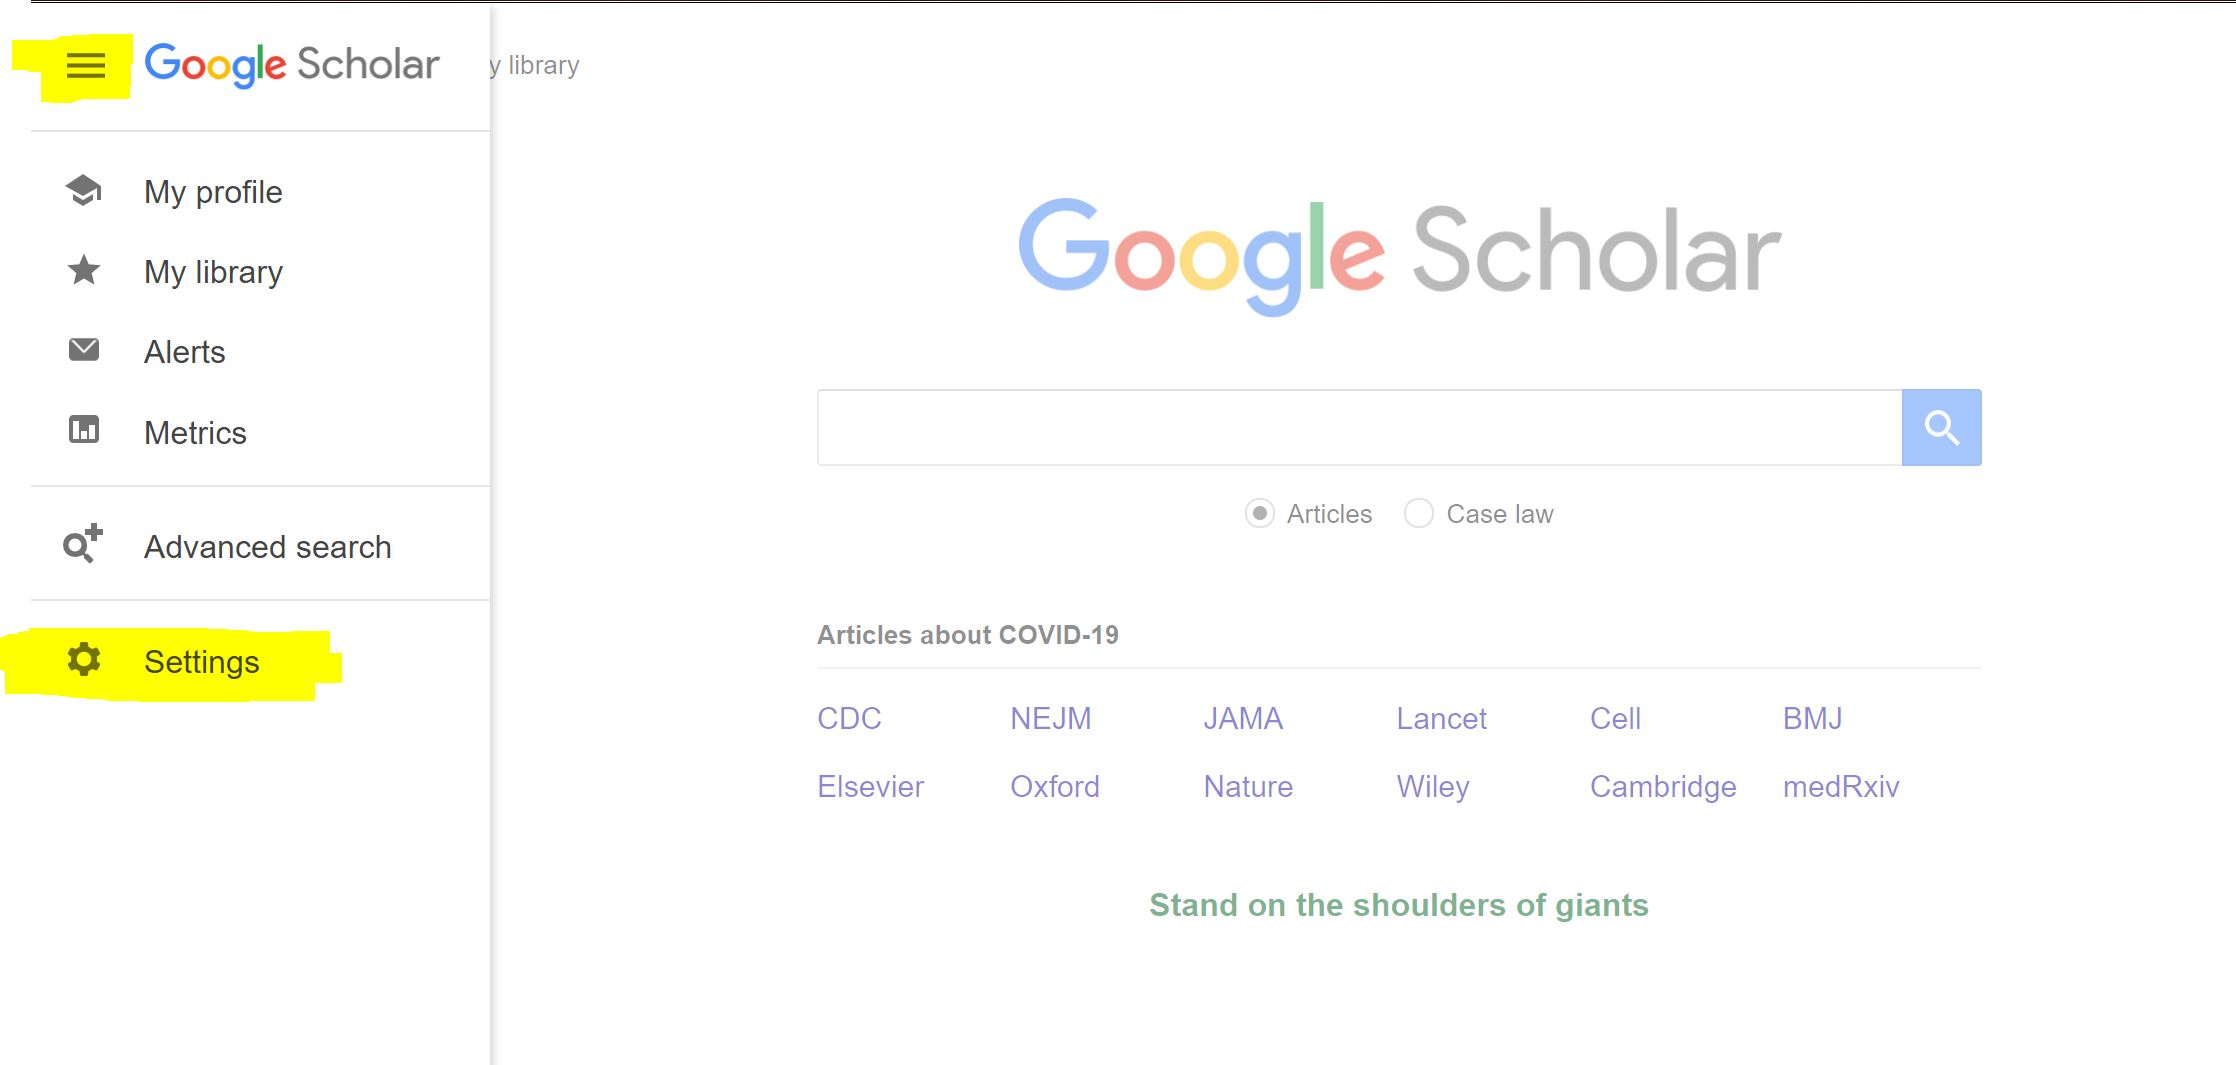 screenshot of Google Scholar settings menu